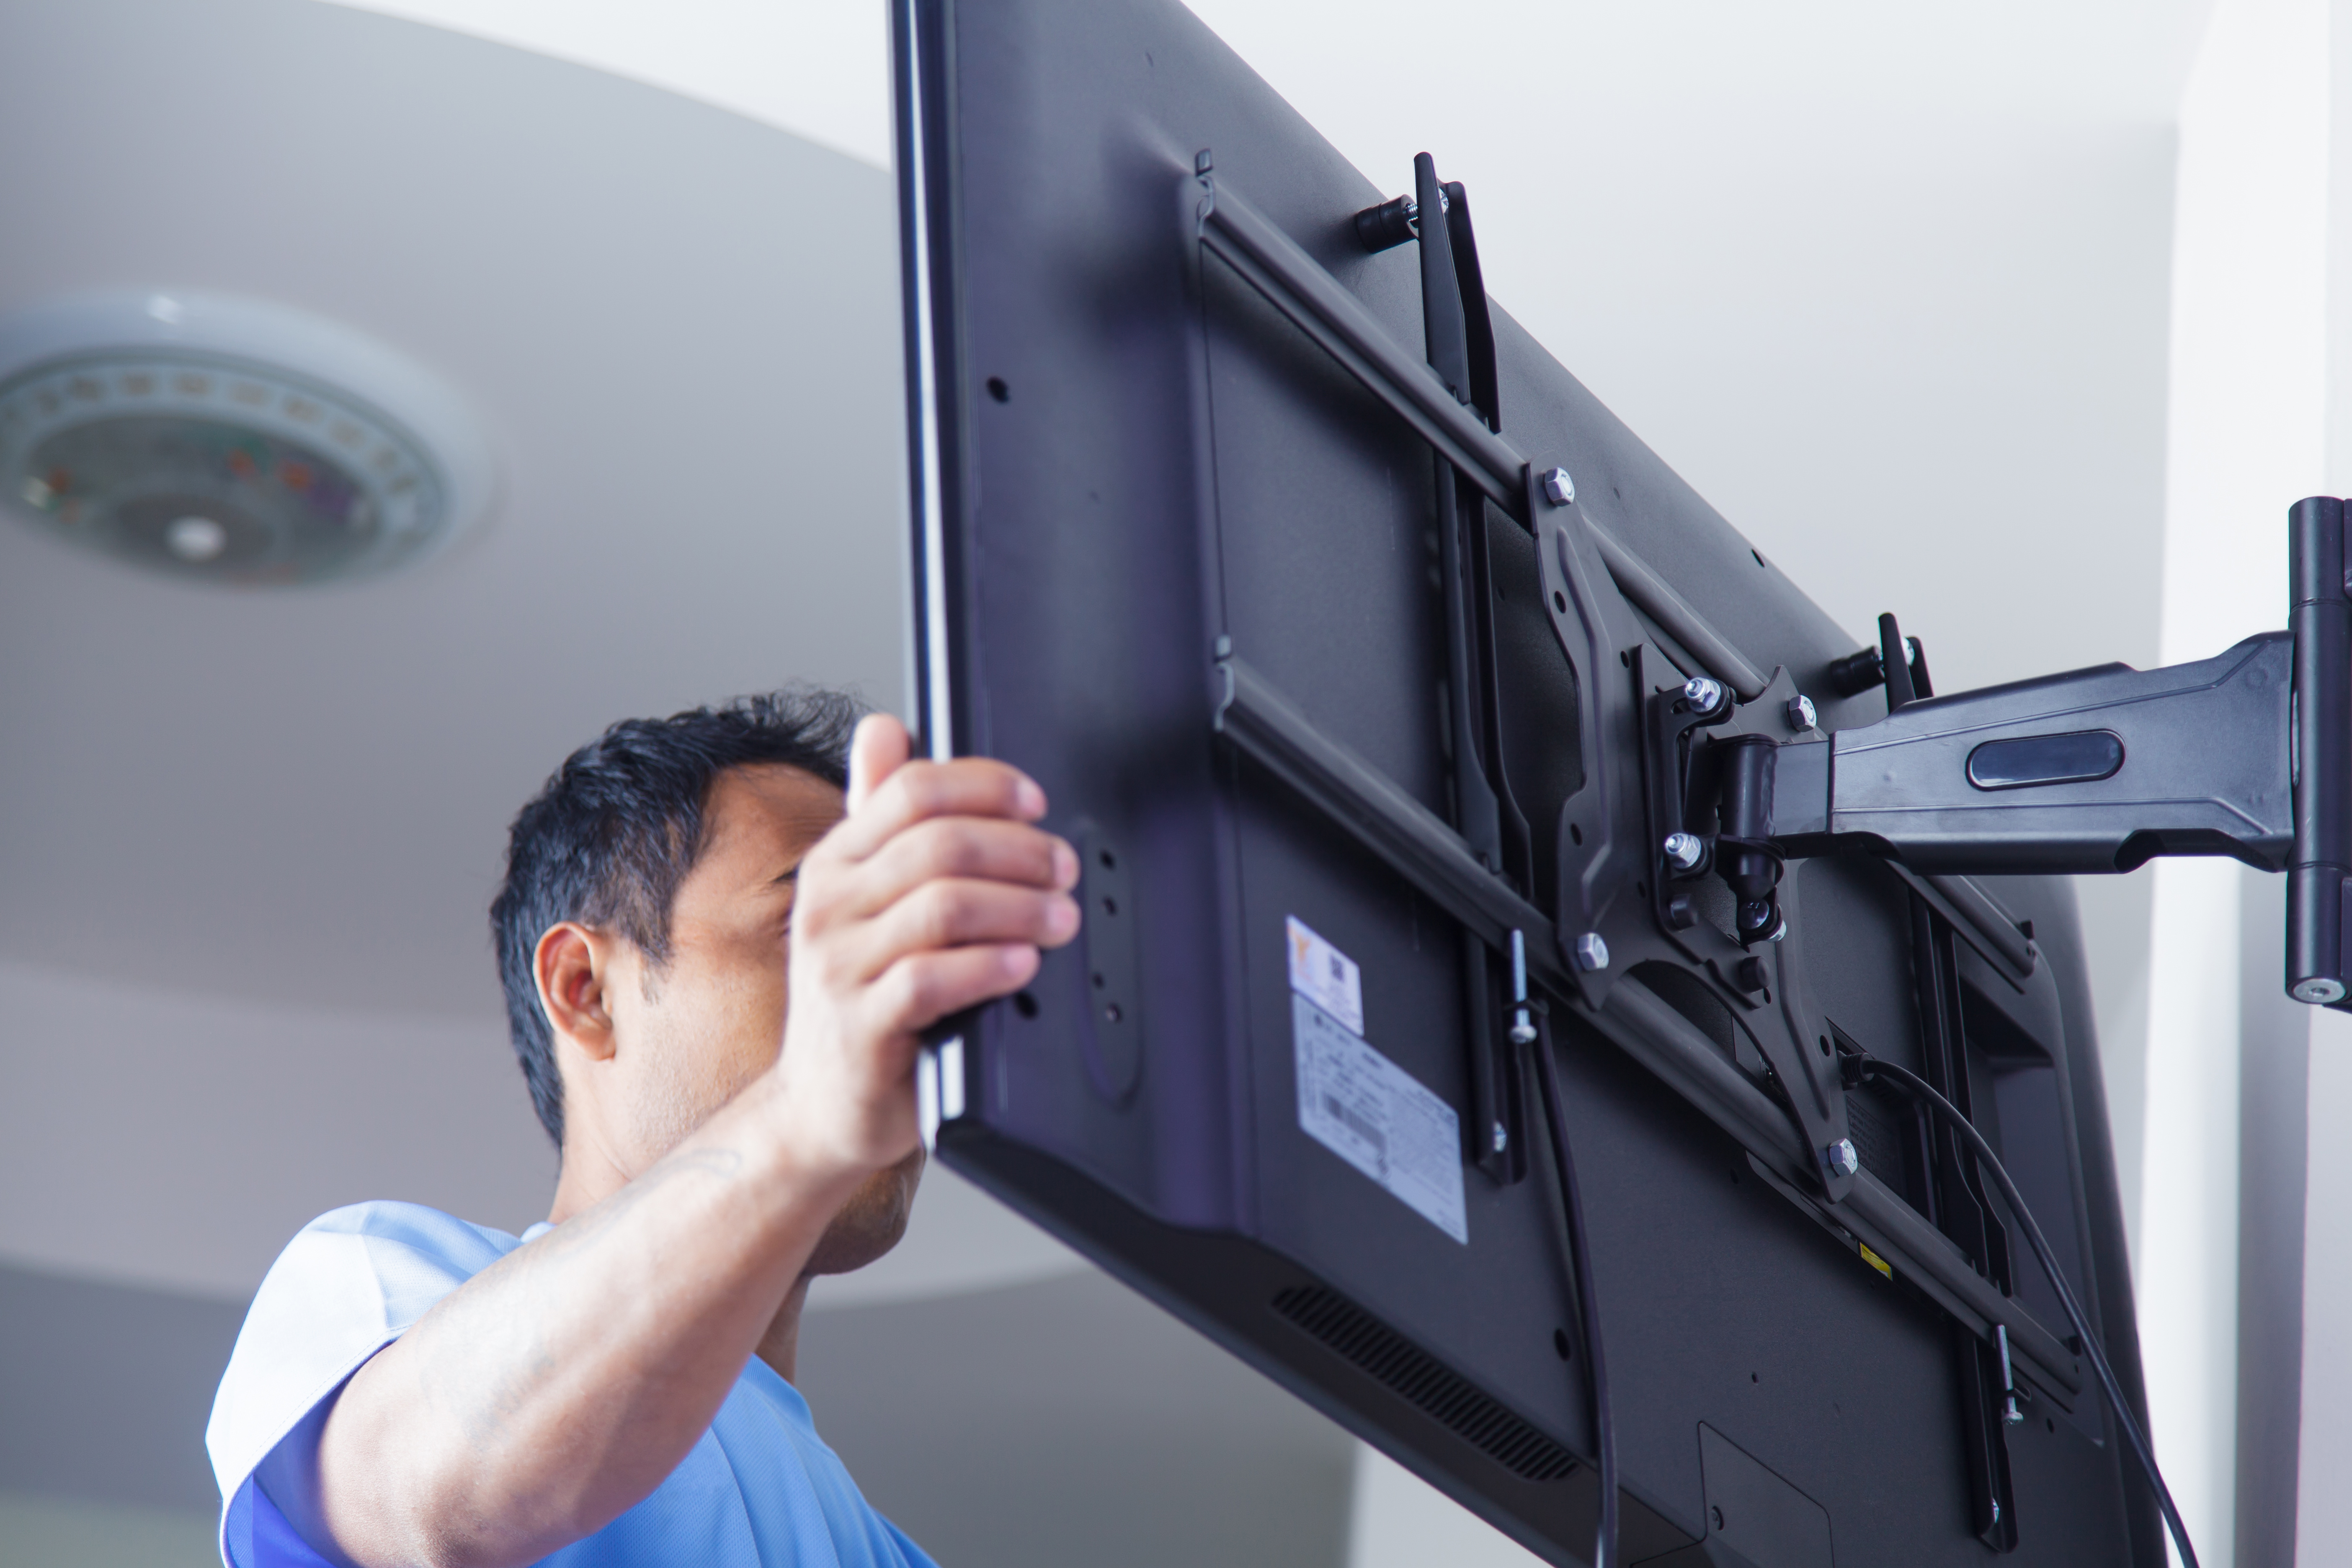 Installer Mounting TV on the wall by using mounting TV brackets